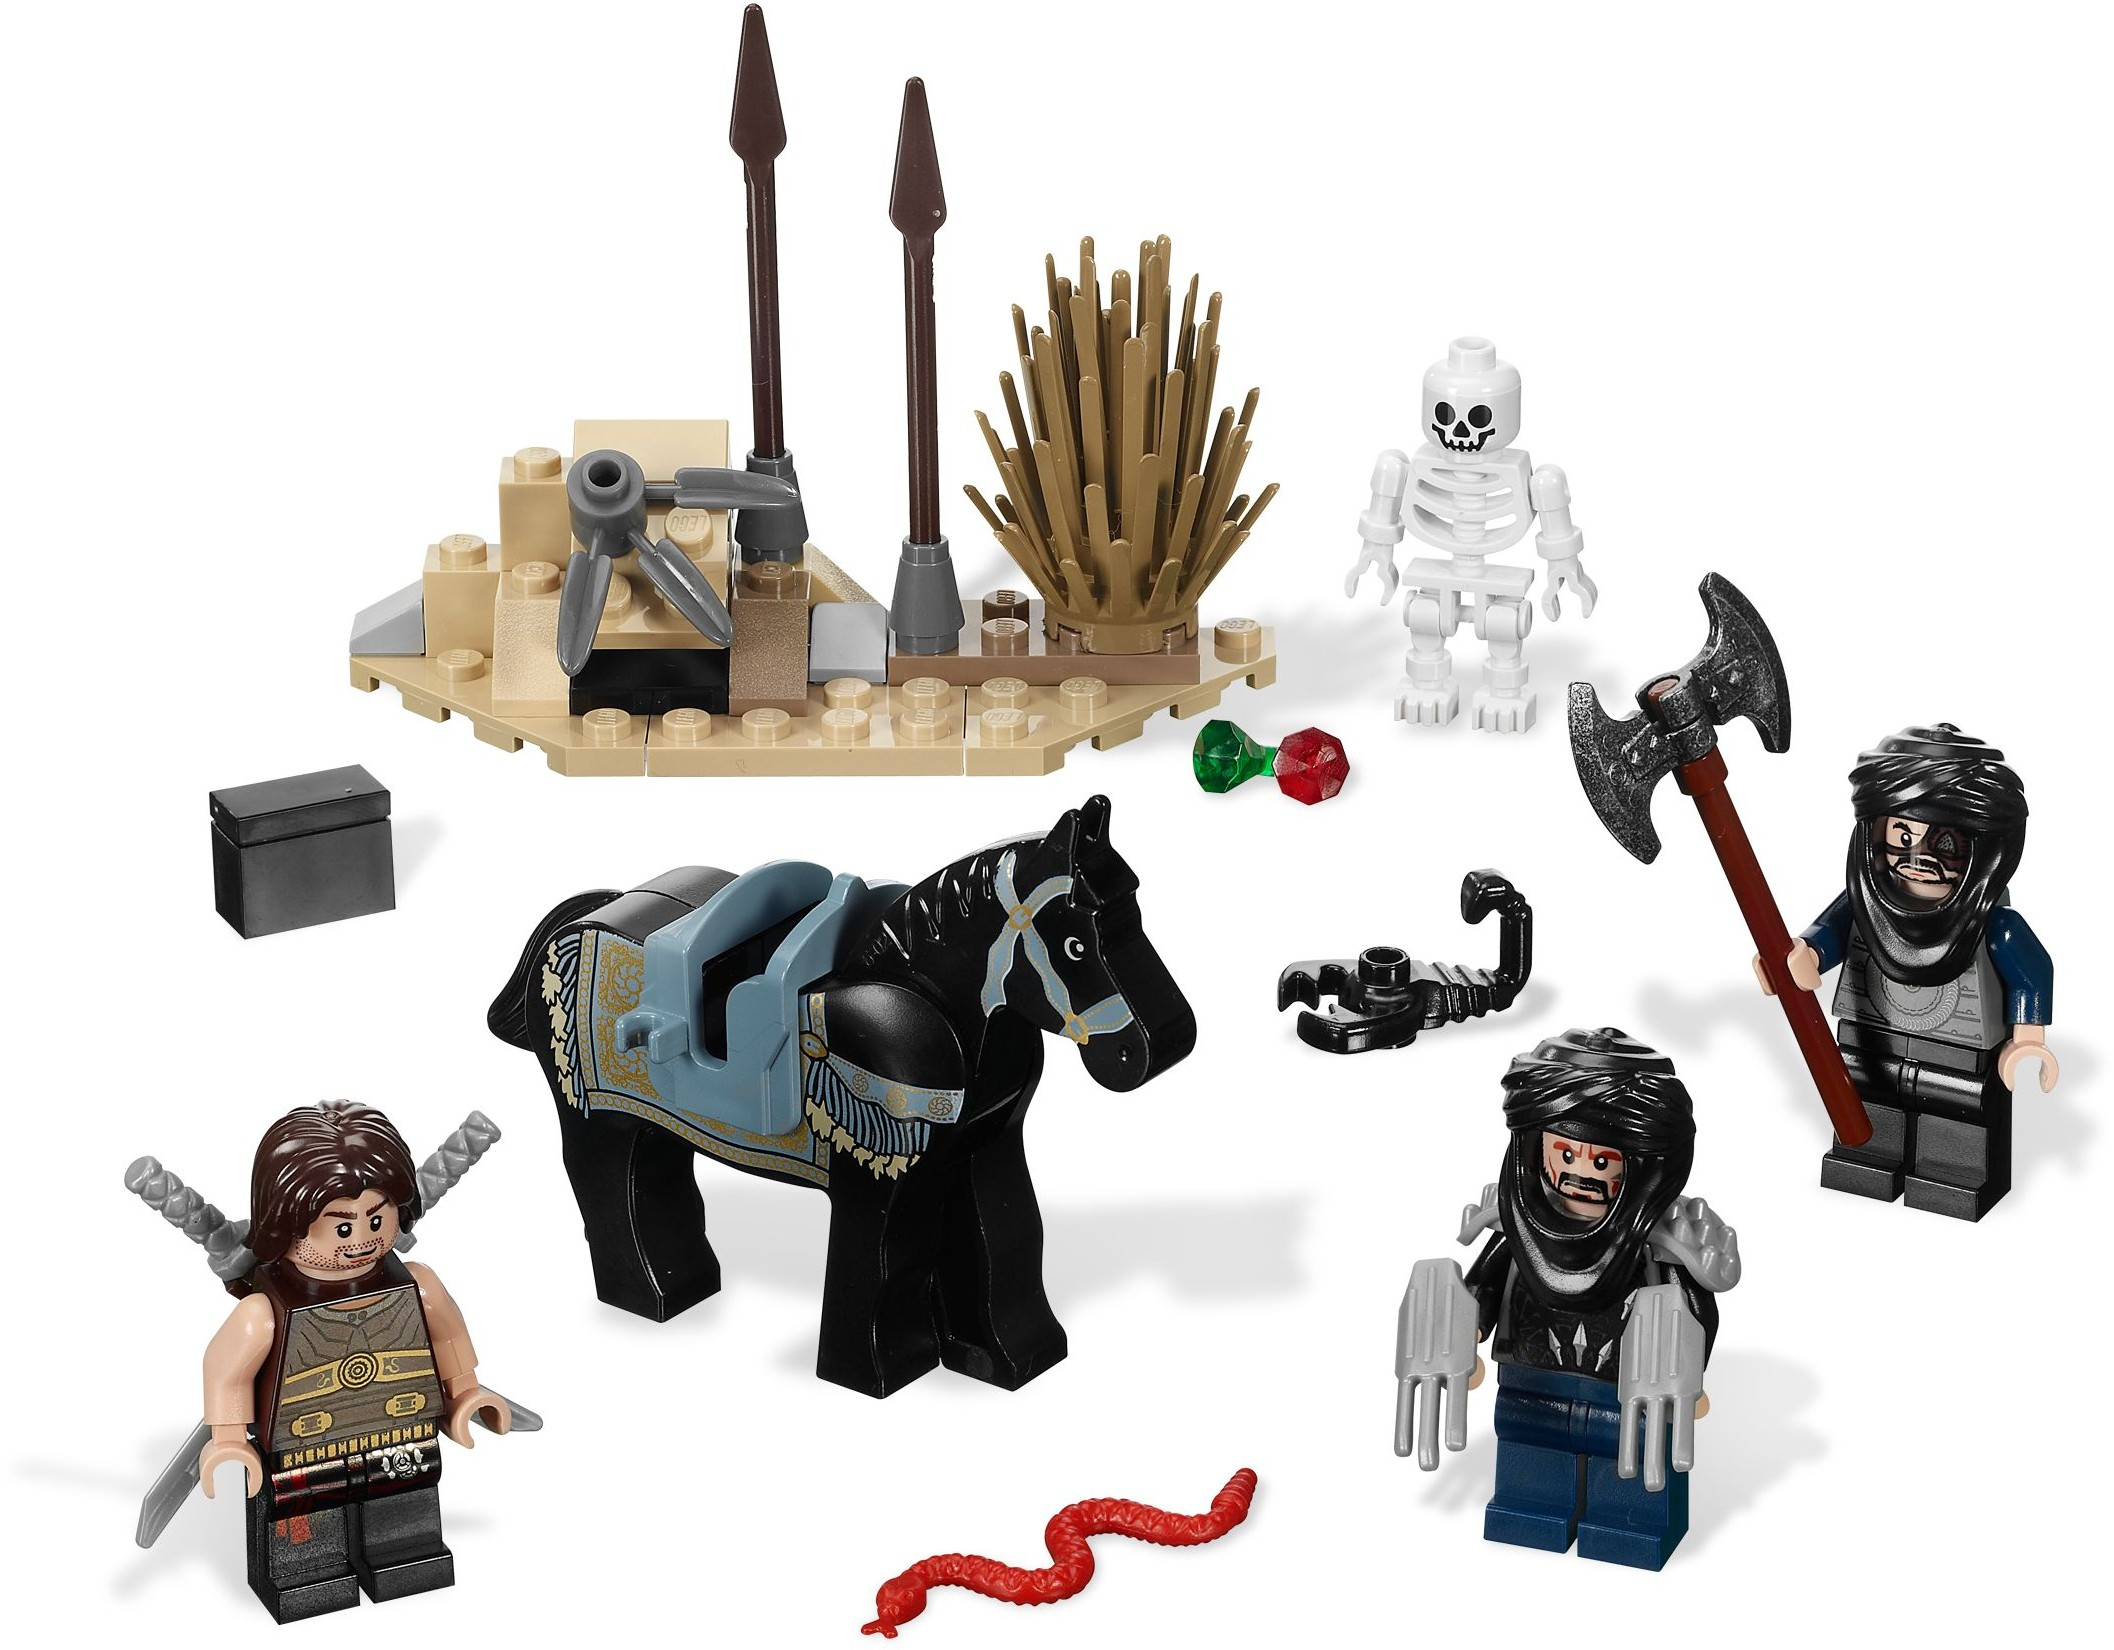 prince of persia | brickset: lego set guide and database